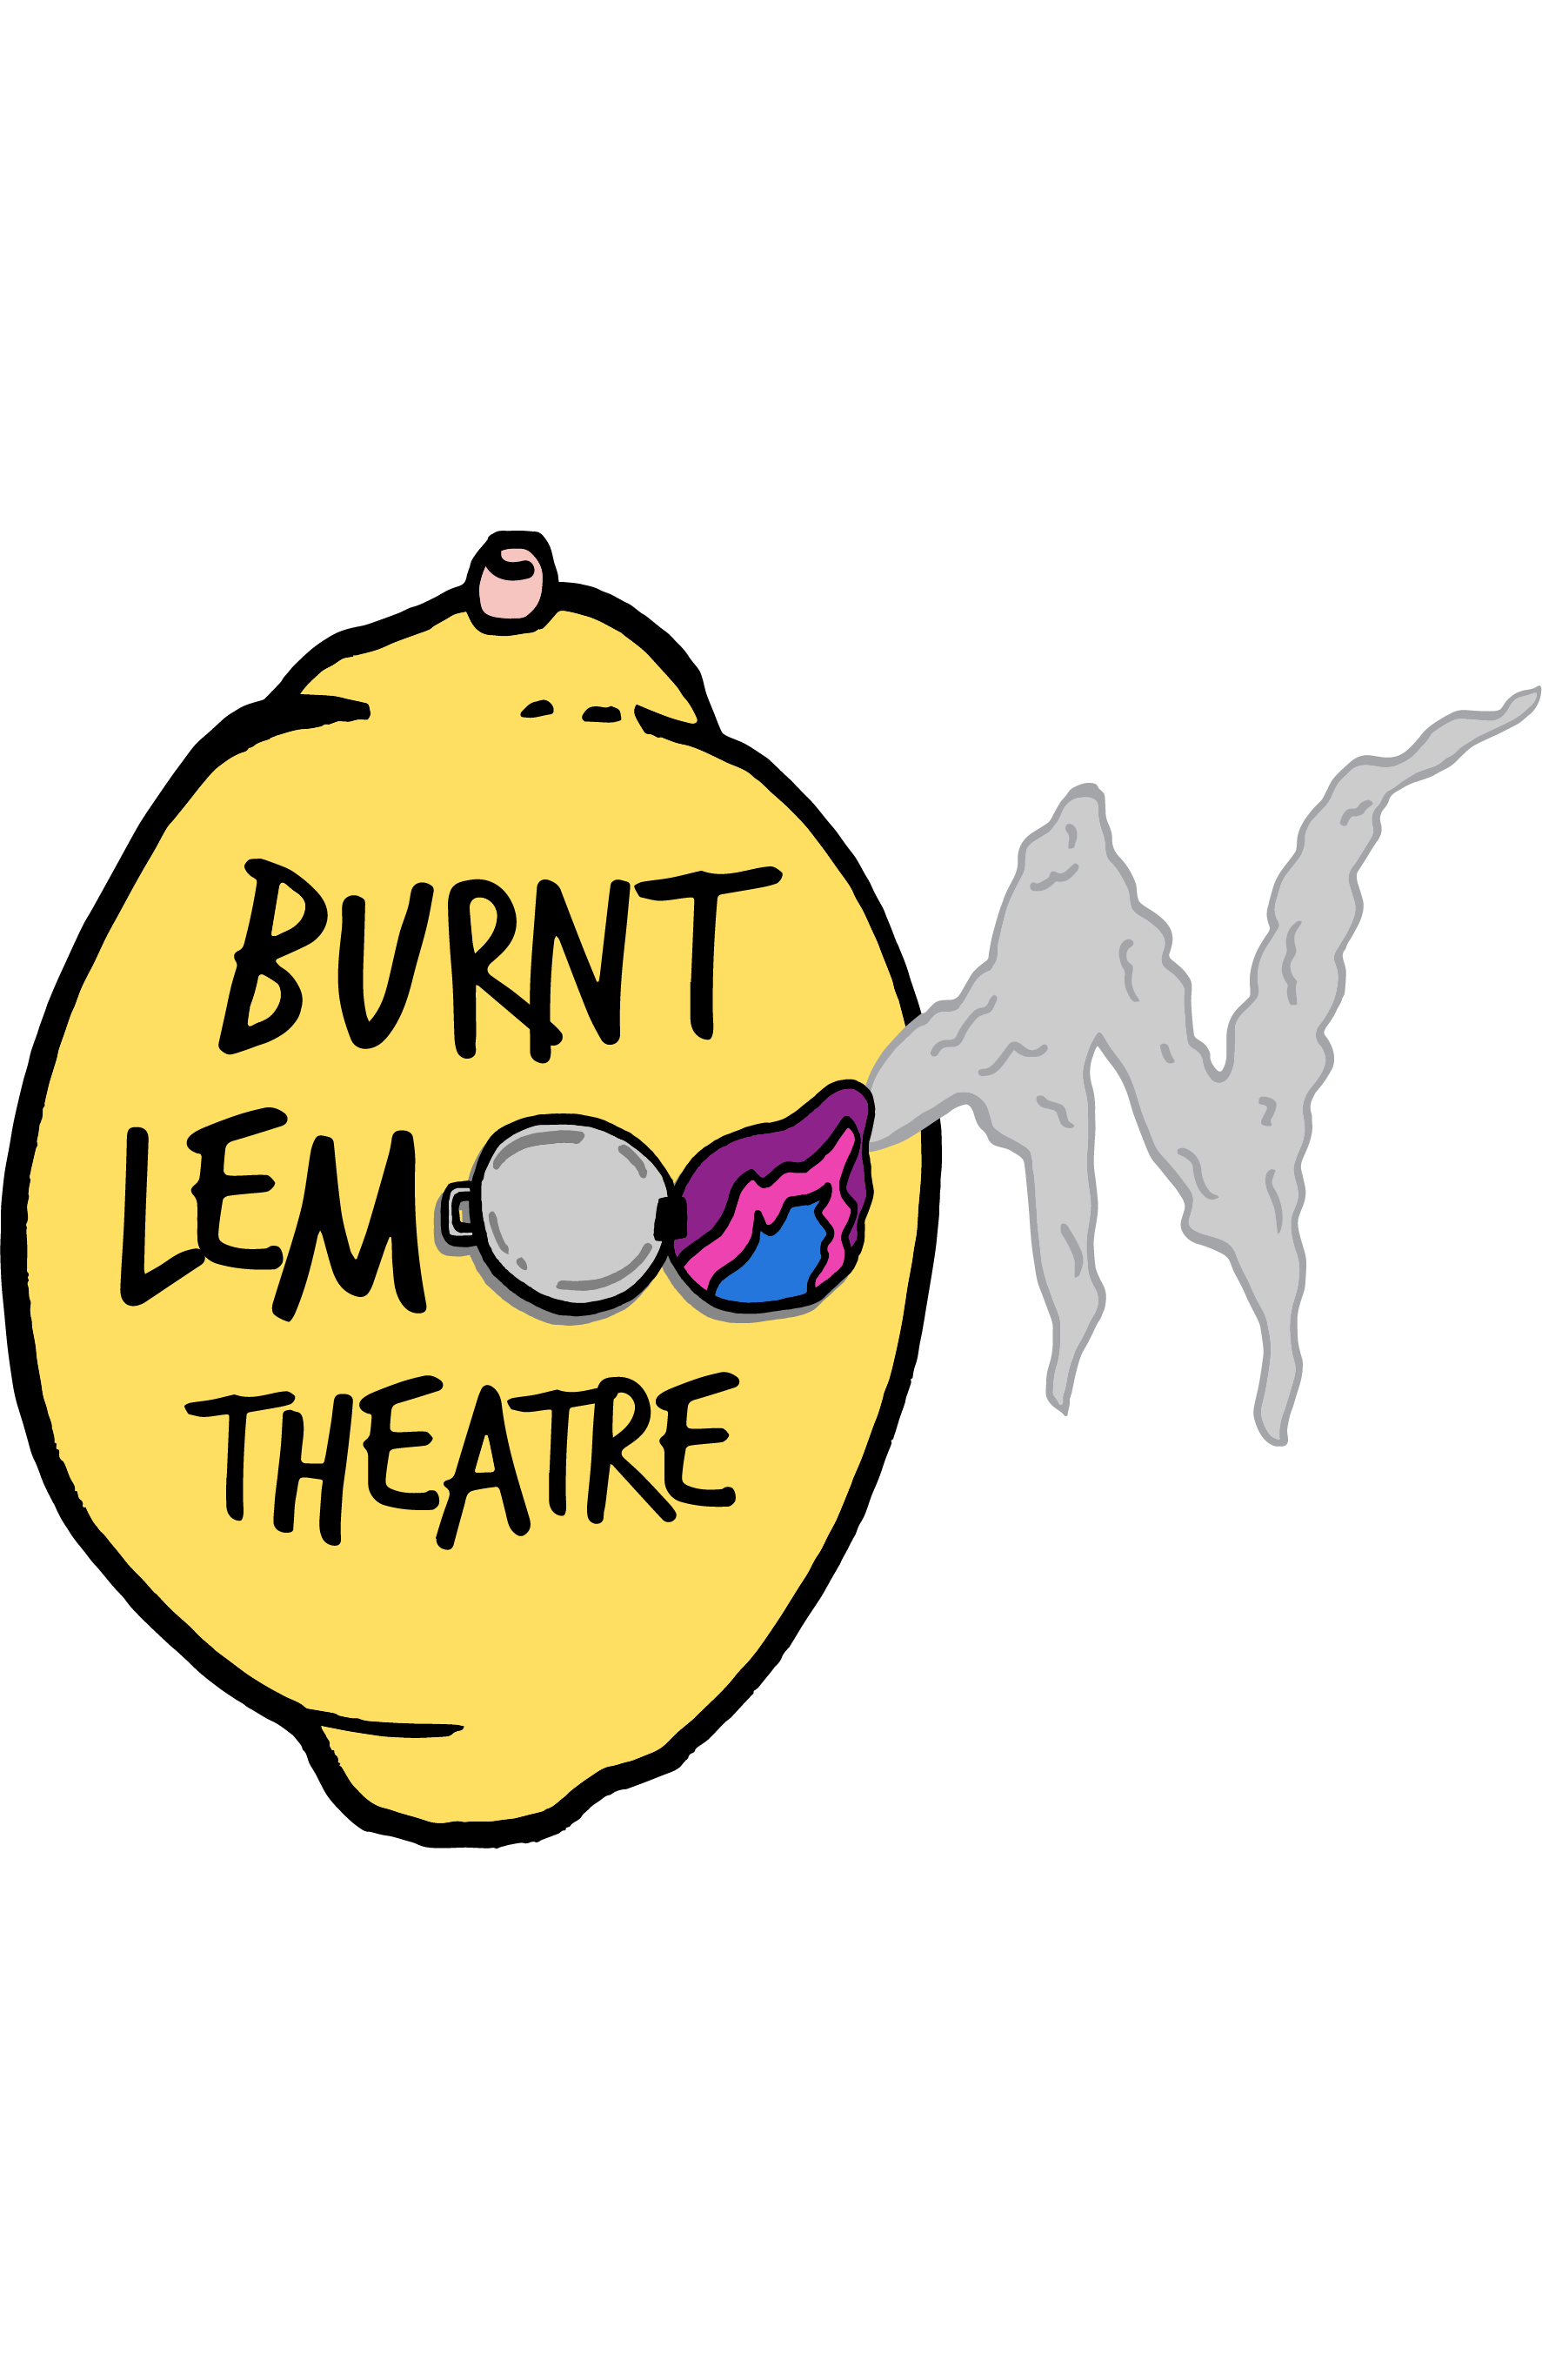 Burnt Lemon Theatre is an award-winning, female led company launching work from gut to stage. Their latest production, Half Moon Shania, combined original girl-band rock music and amazing storytelling. Burnt Lemon have received glowing reviews, including 5 stars from Musical Theatre Review and 4 stars from The Stage. Half Moon Shania appeared at the Edinburgh Fringe 2018 and VAULT Festival 2019. Upcoming: Manchester's Incoming Festival.